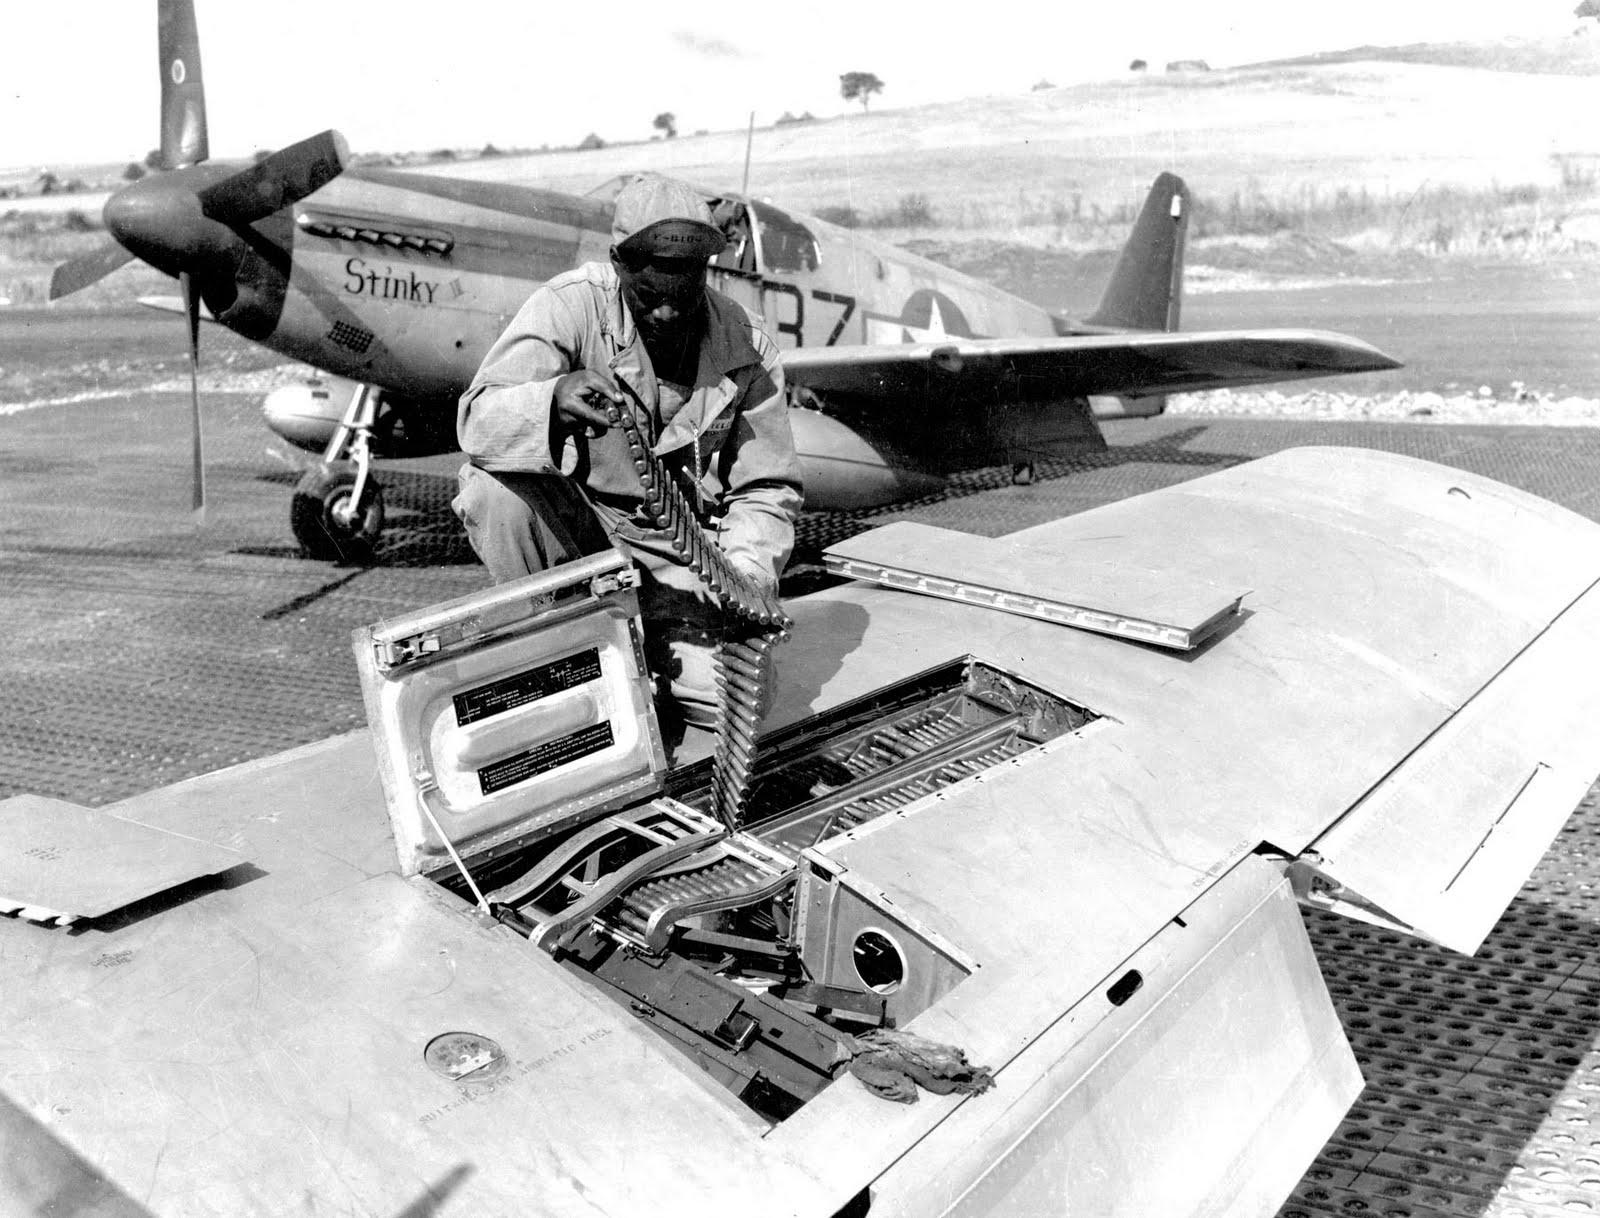 Support crew arming the aircraft's .50 caliber machine guns.